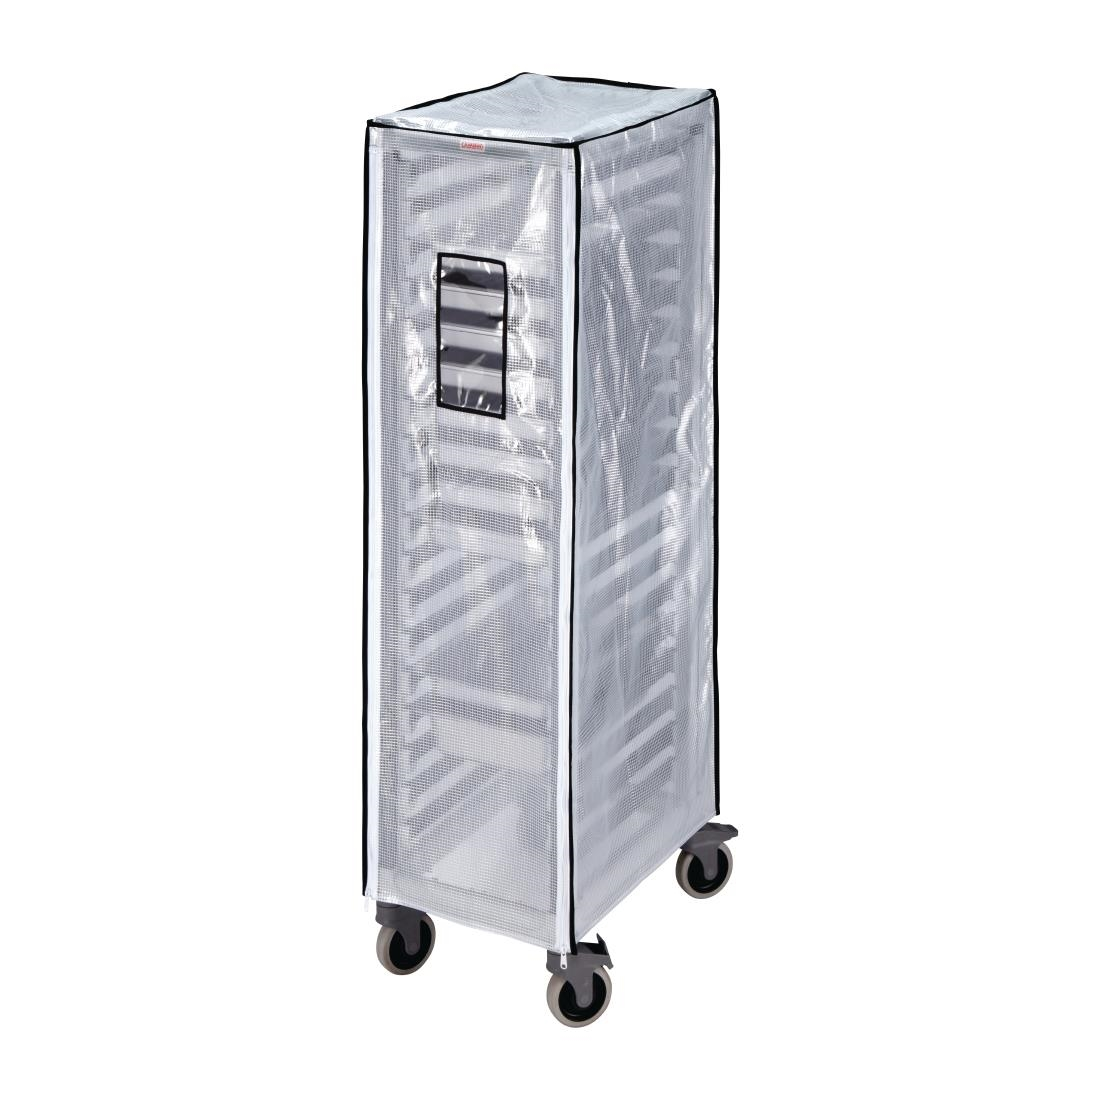 Image of Cambro 1/1GN Food Pan Trolley Cover Tall